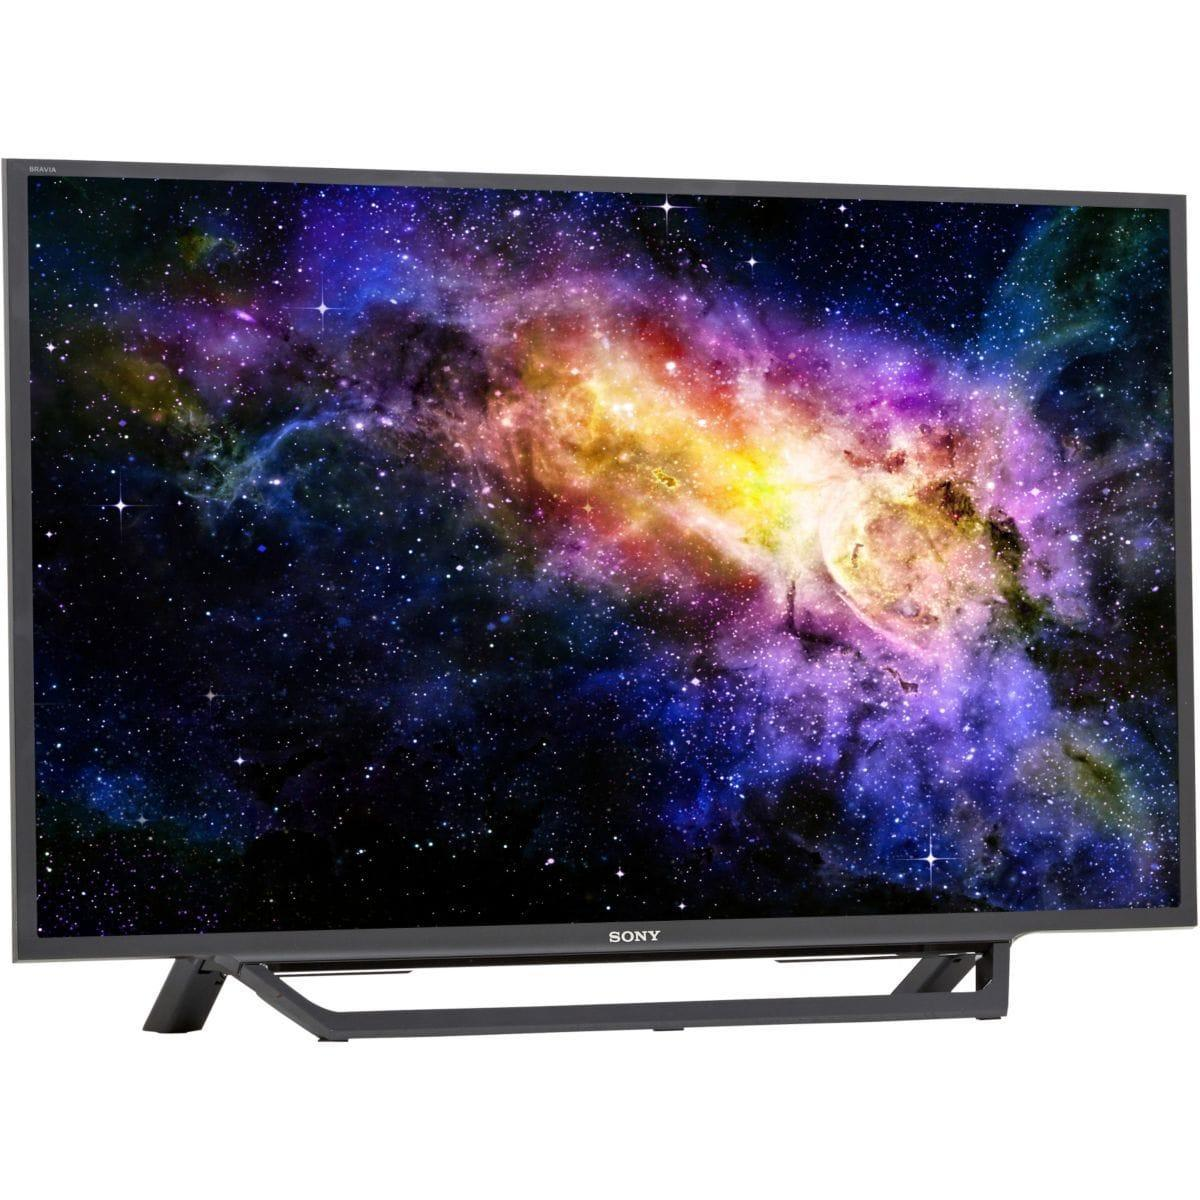 SMART TV LED FULL HD 102 Cm Sony Kdl40wd650